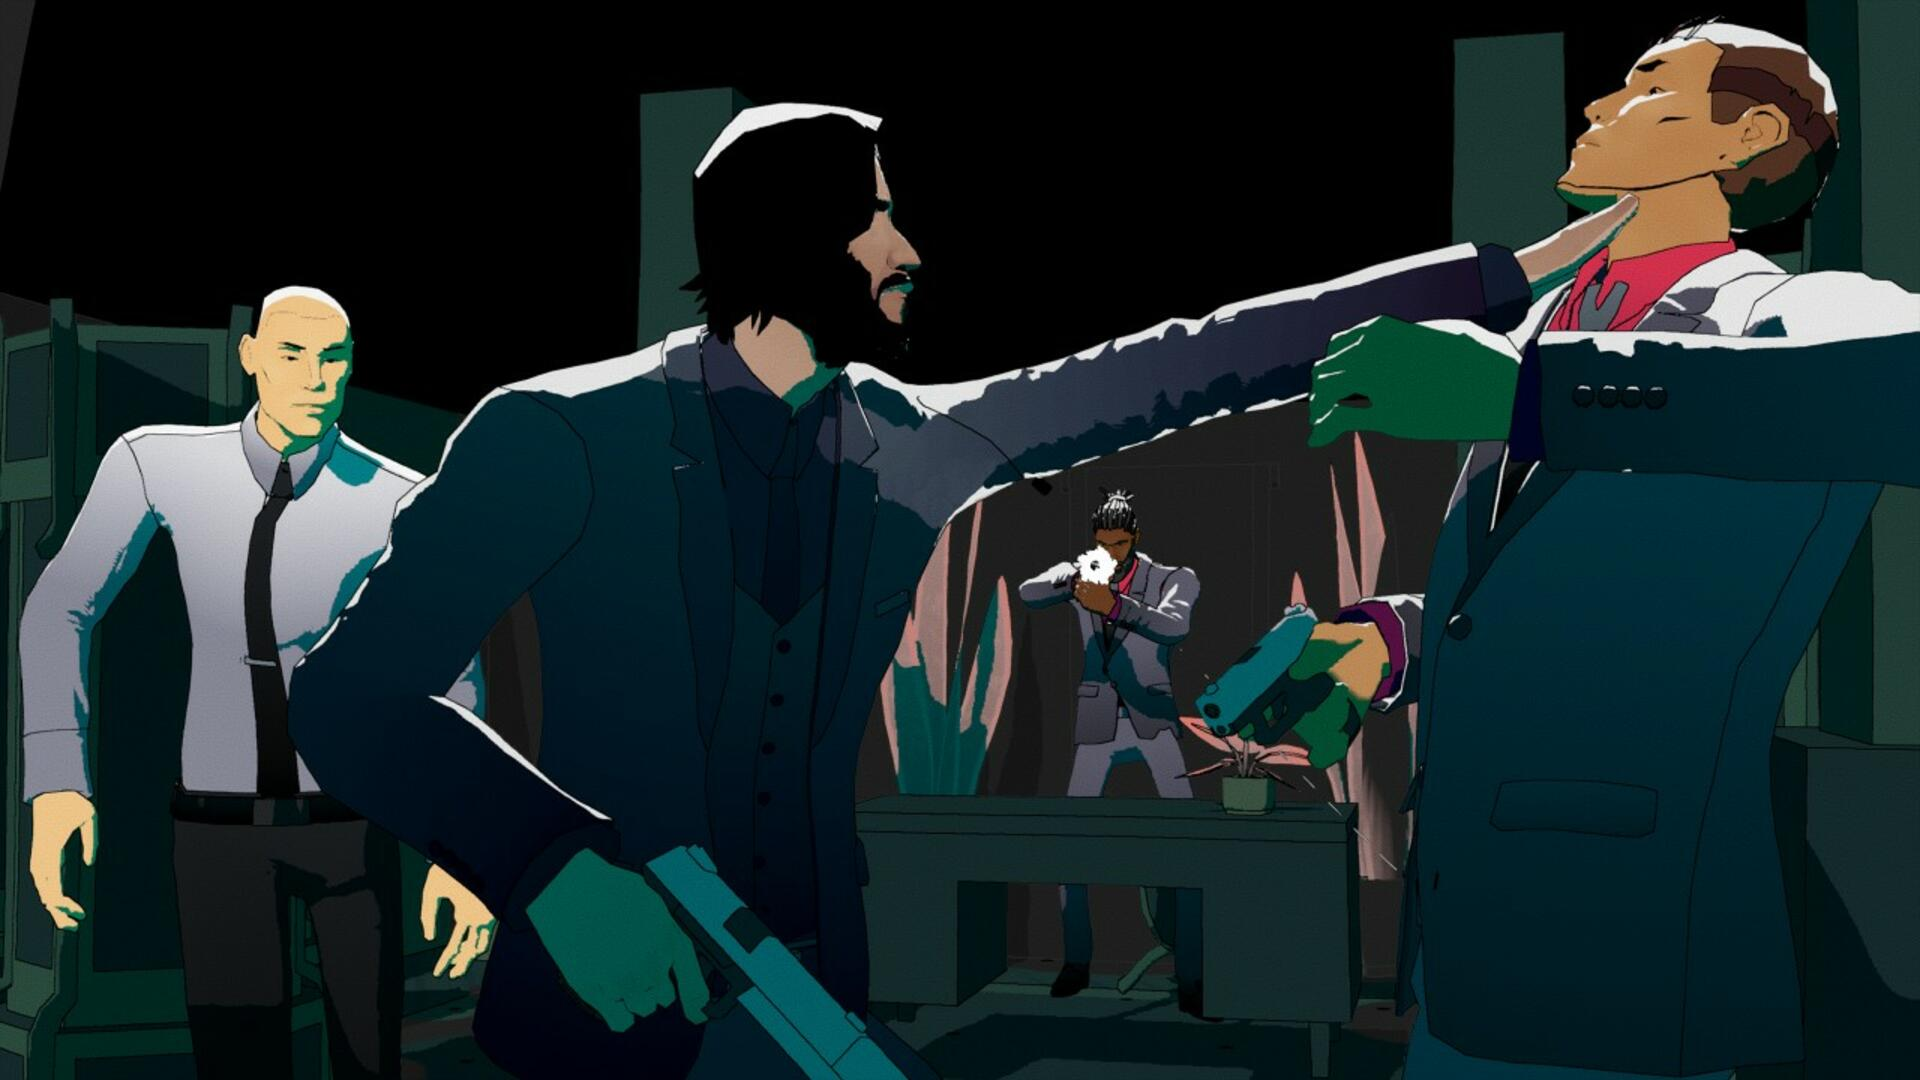 John Wick Hex is Keanu Reeves Meets XCOM in New Game by Mike Bithell